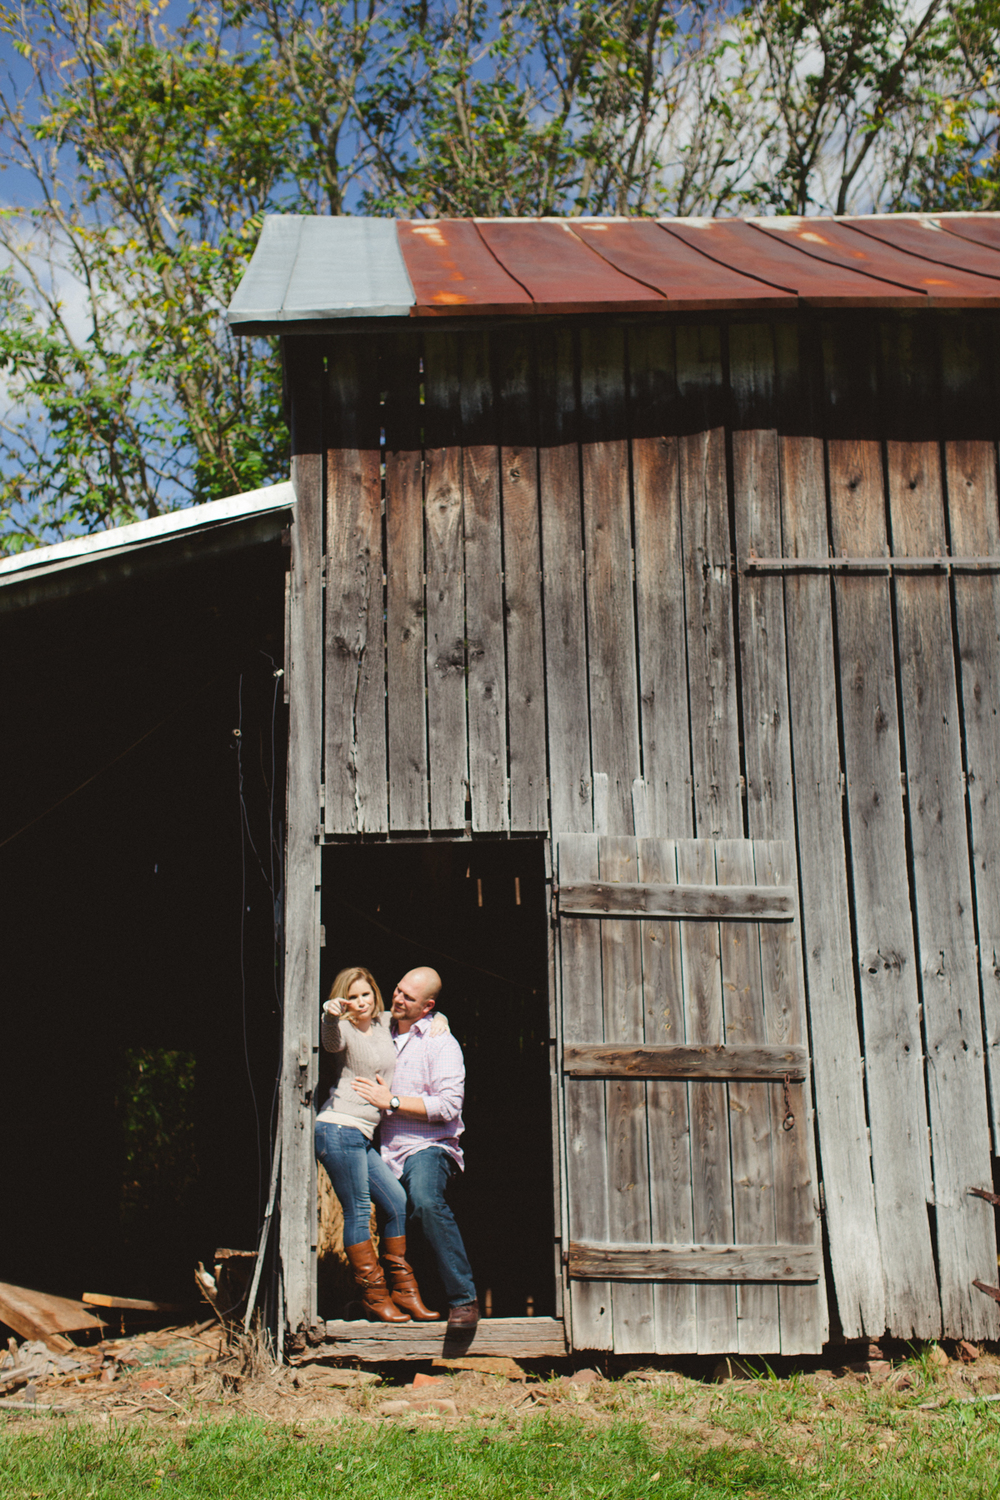 Leesburg-VA-Engagement-48fields -Vness-Photography-105.JPG